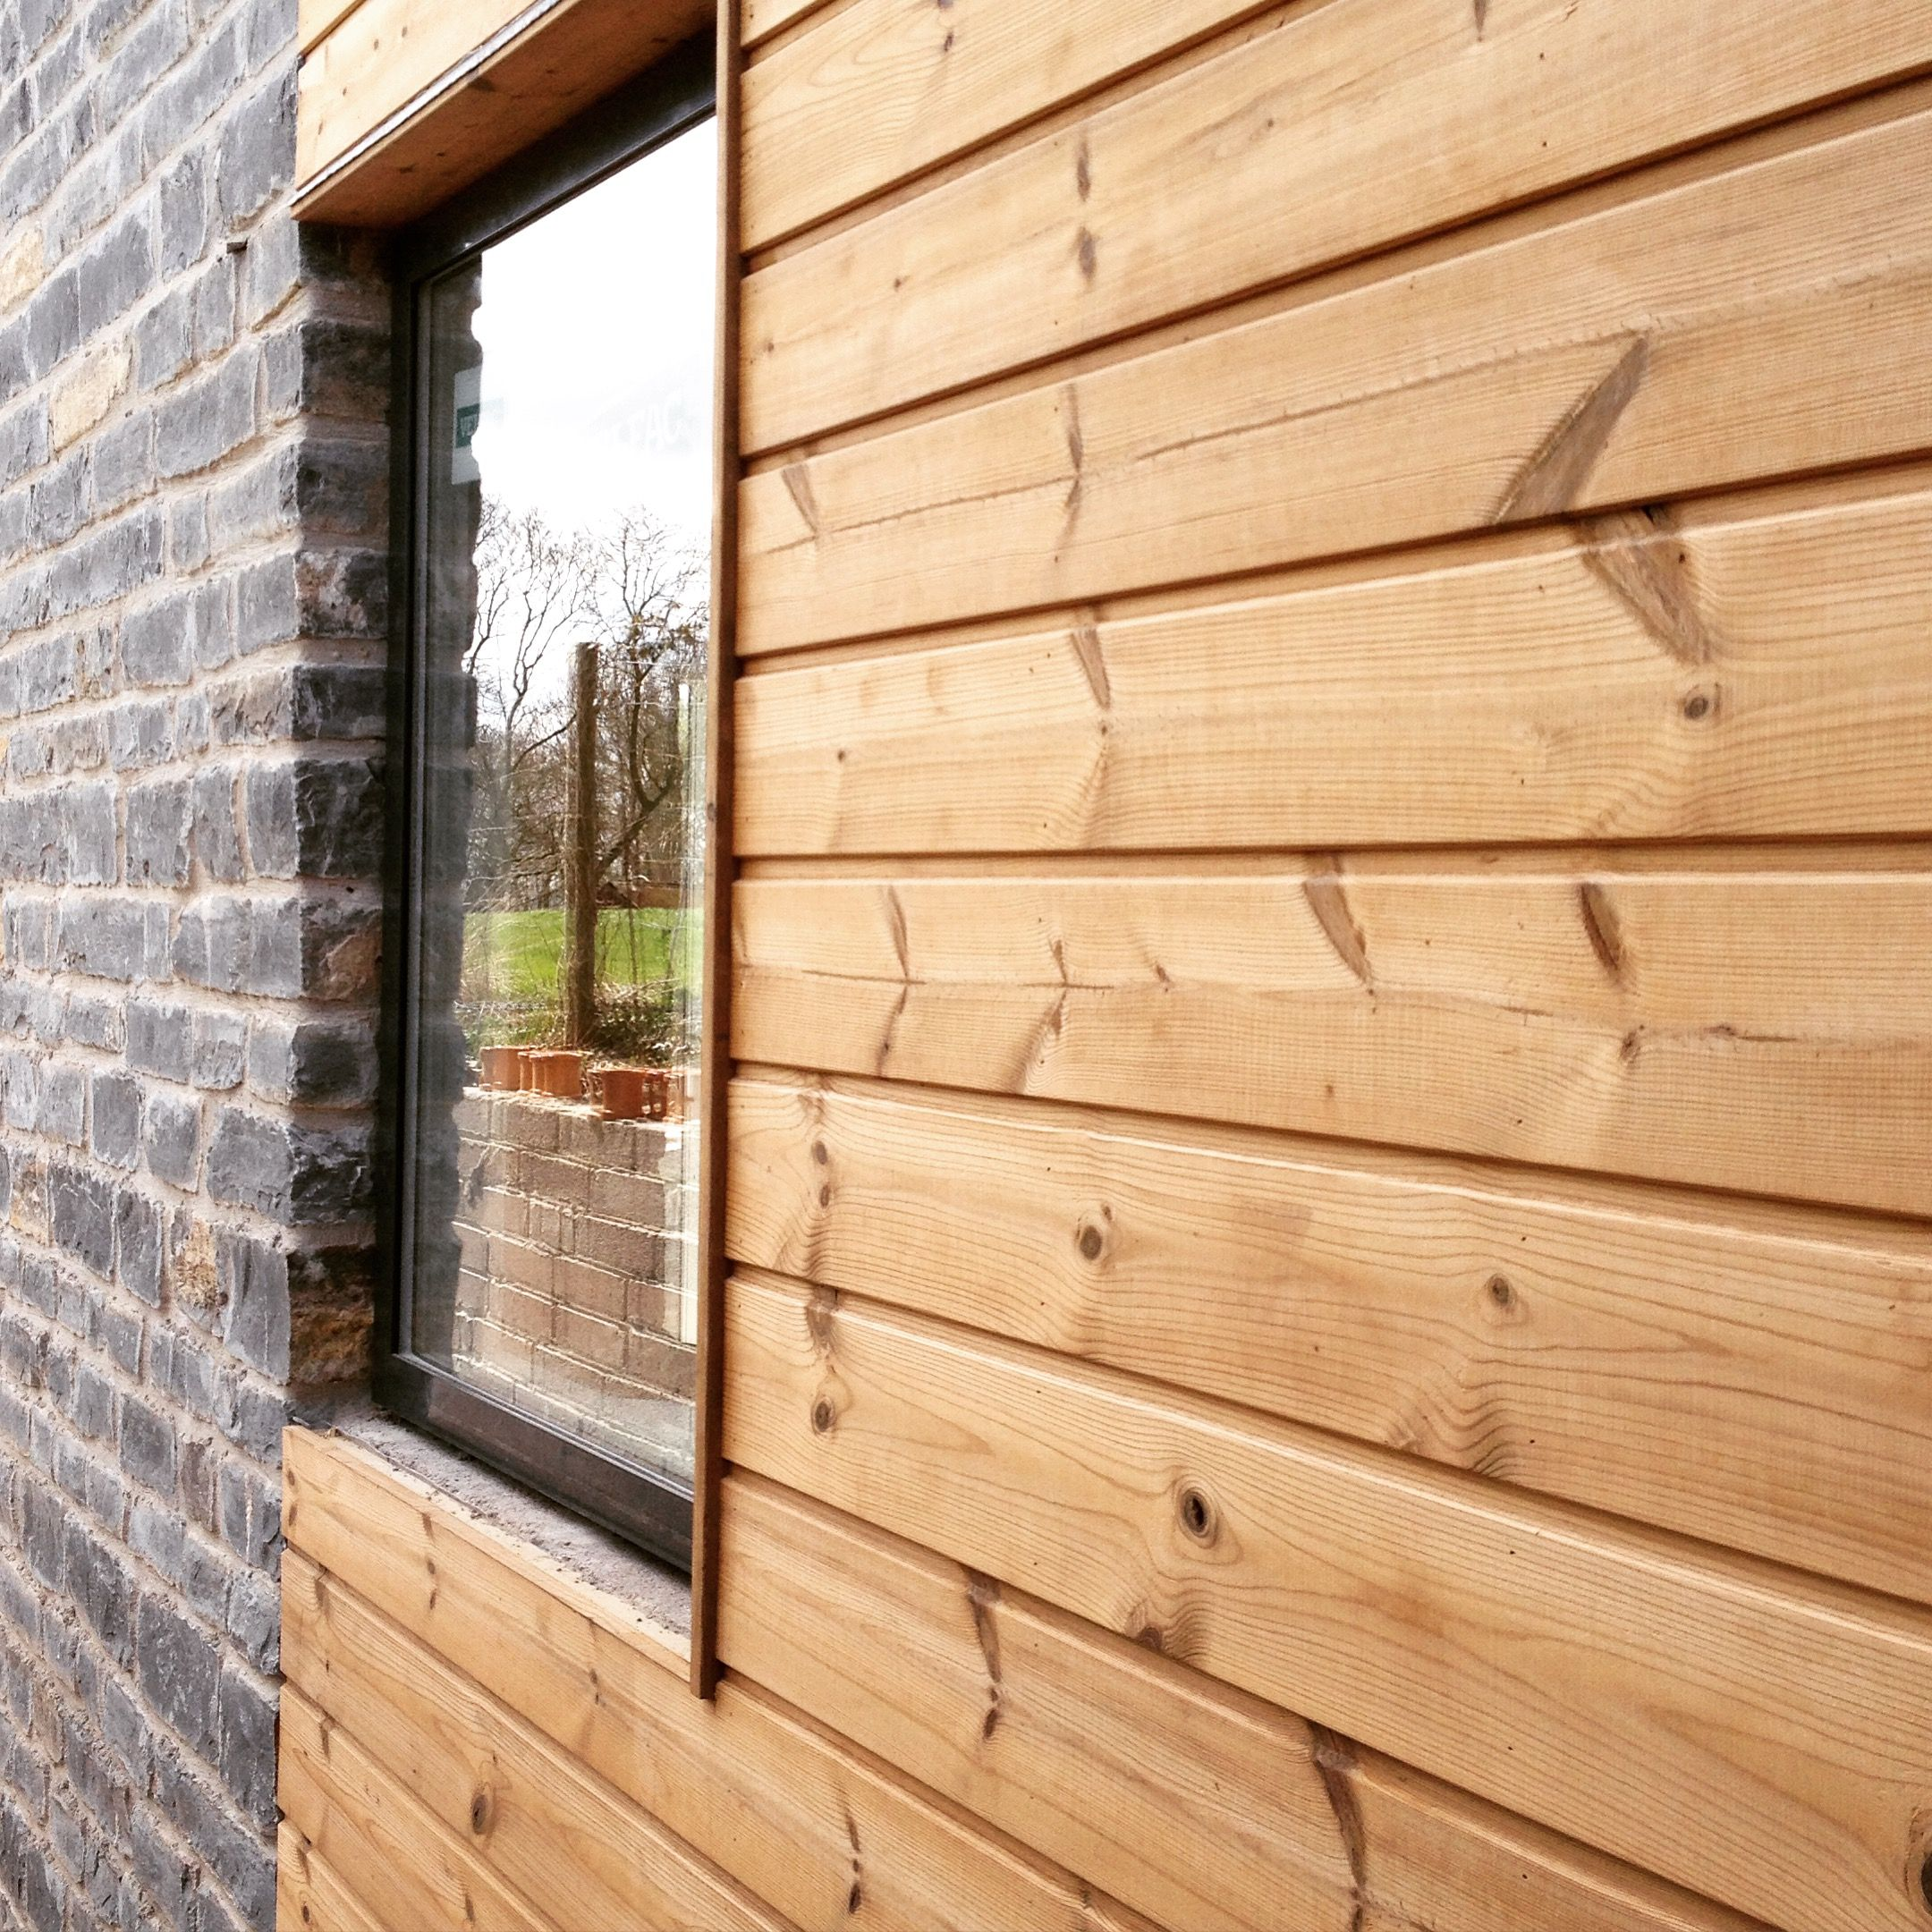 Wooden Cladding Detail ~ Eco homes in somerset completion due summer